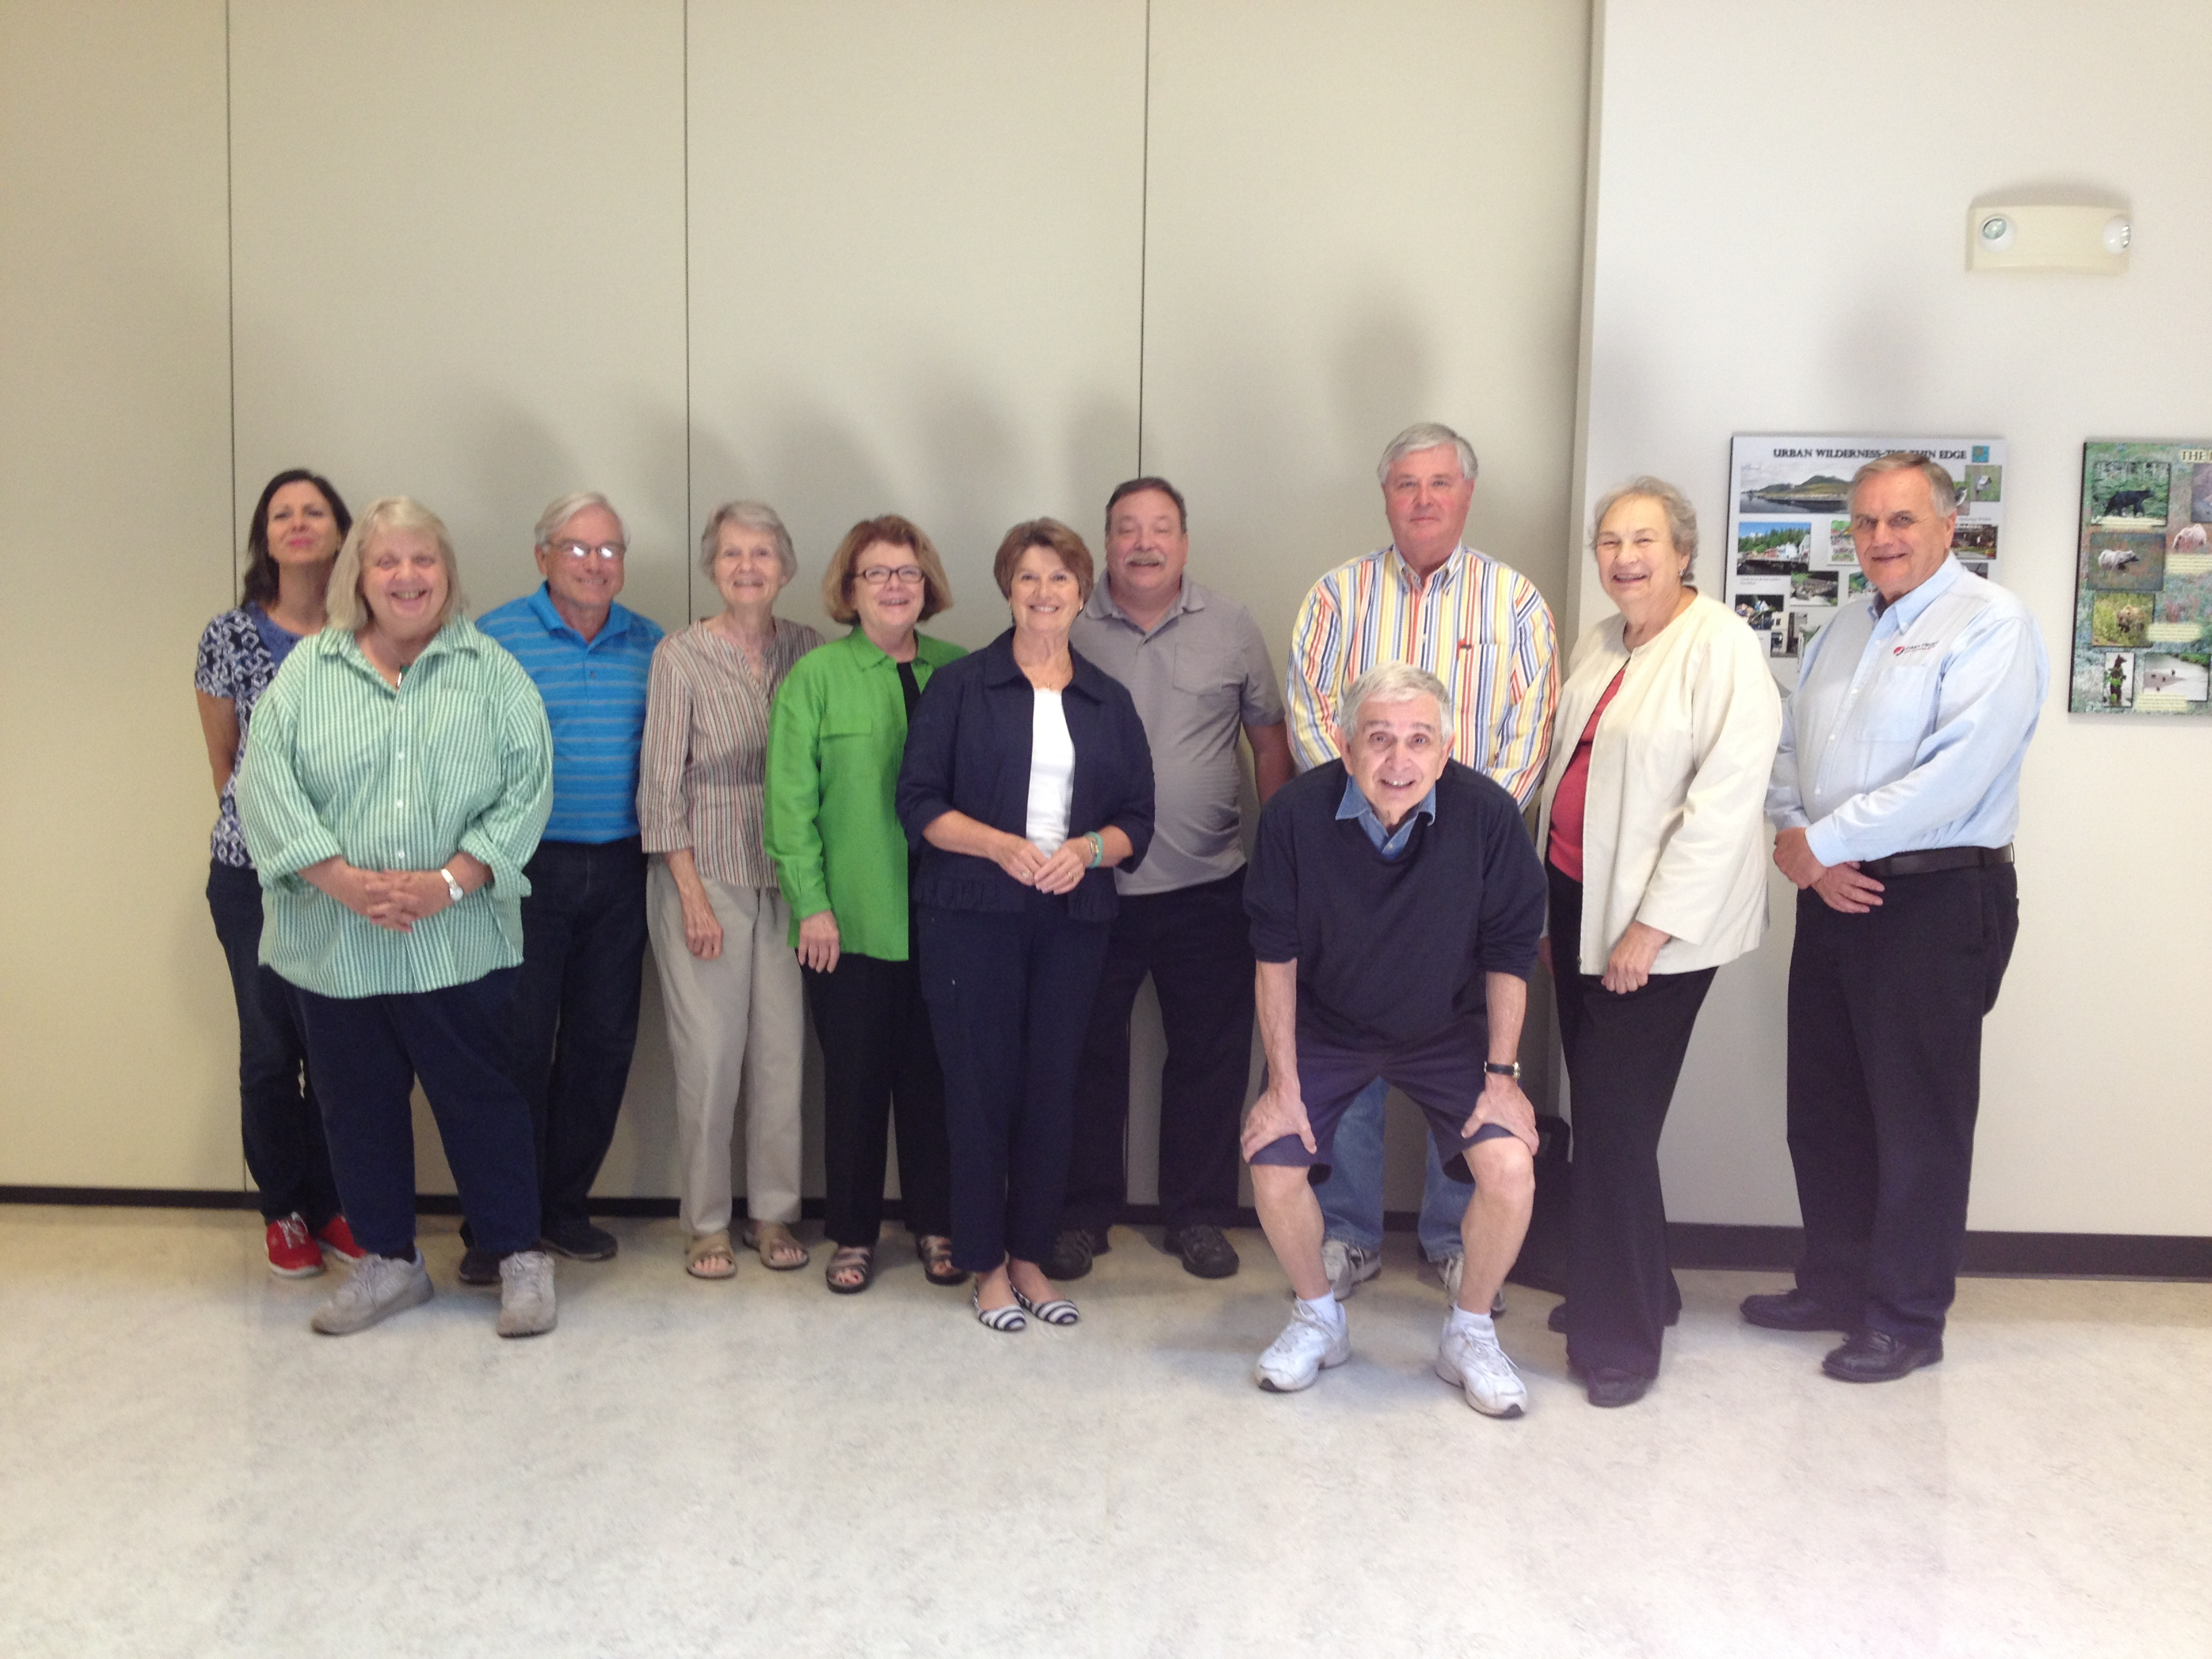 OLLI Board of Directors